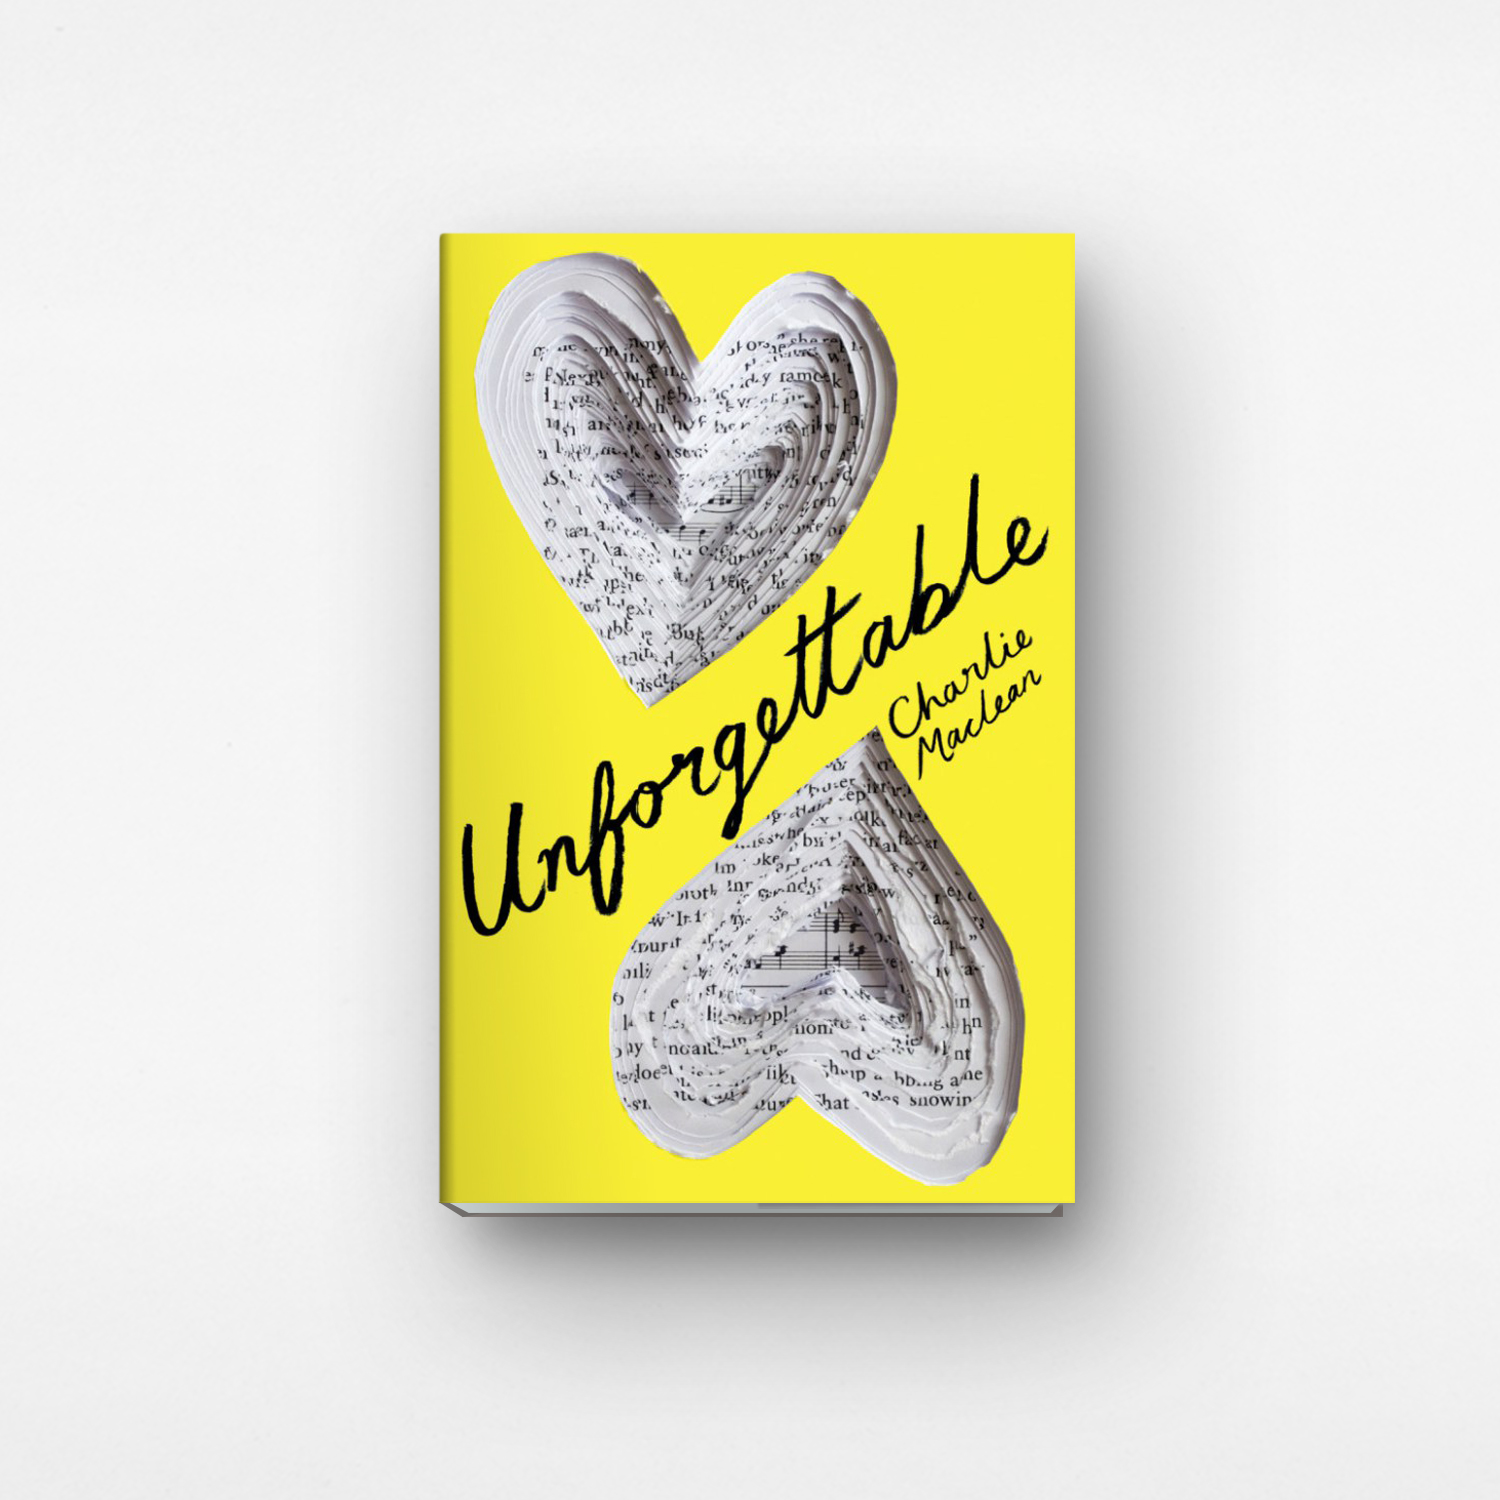 Unforgettable designed by Sinem Erkas